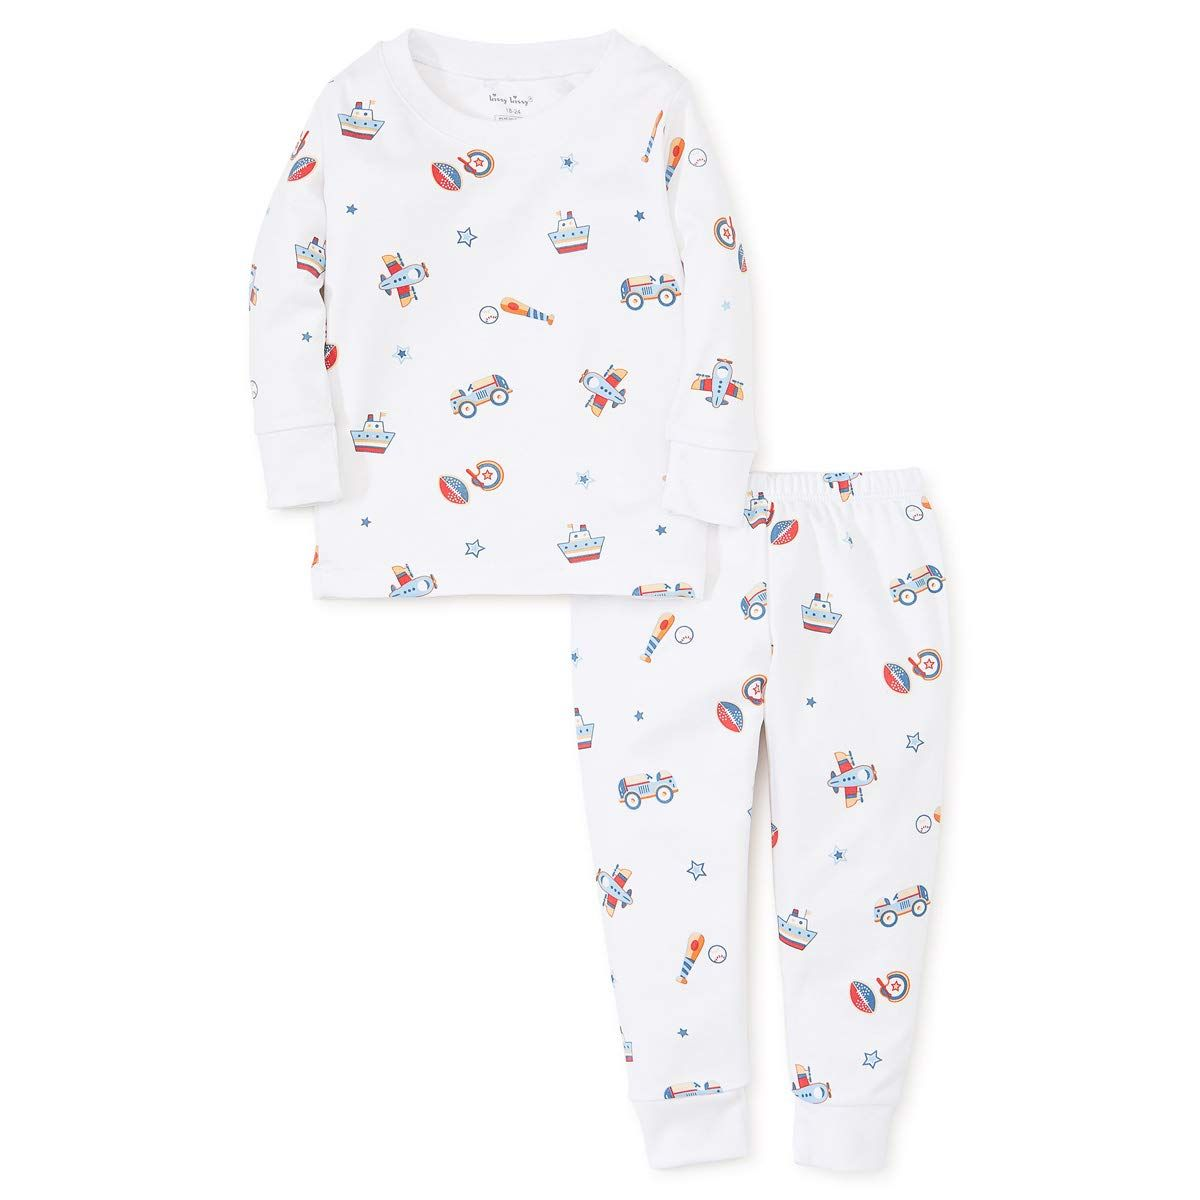 Kissy Kissy Baby Boys Its A Boy Print Pajama Set6 Have A Look At The Photo By Seeing The Web Link This Is An Baby Boy Outfits Baby Fashion Kids Outfits